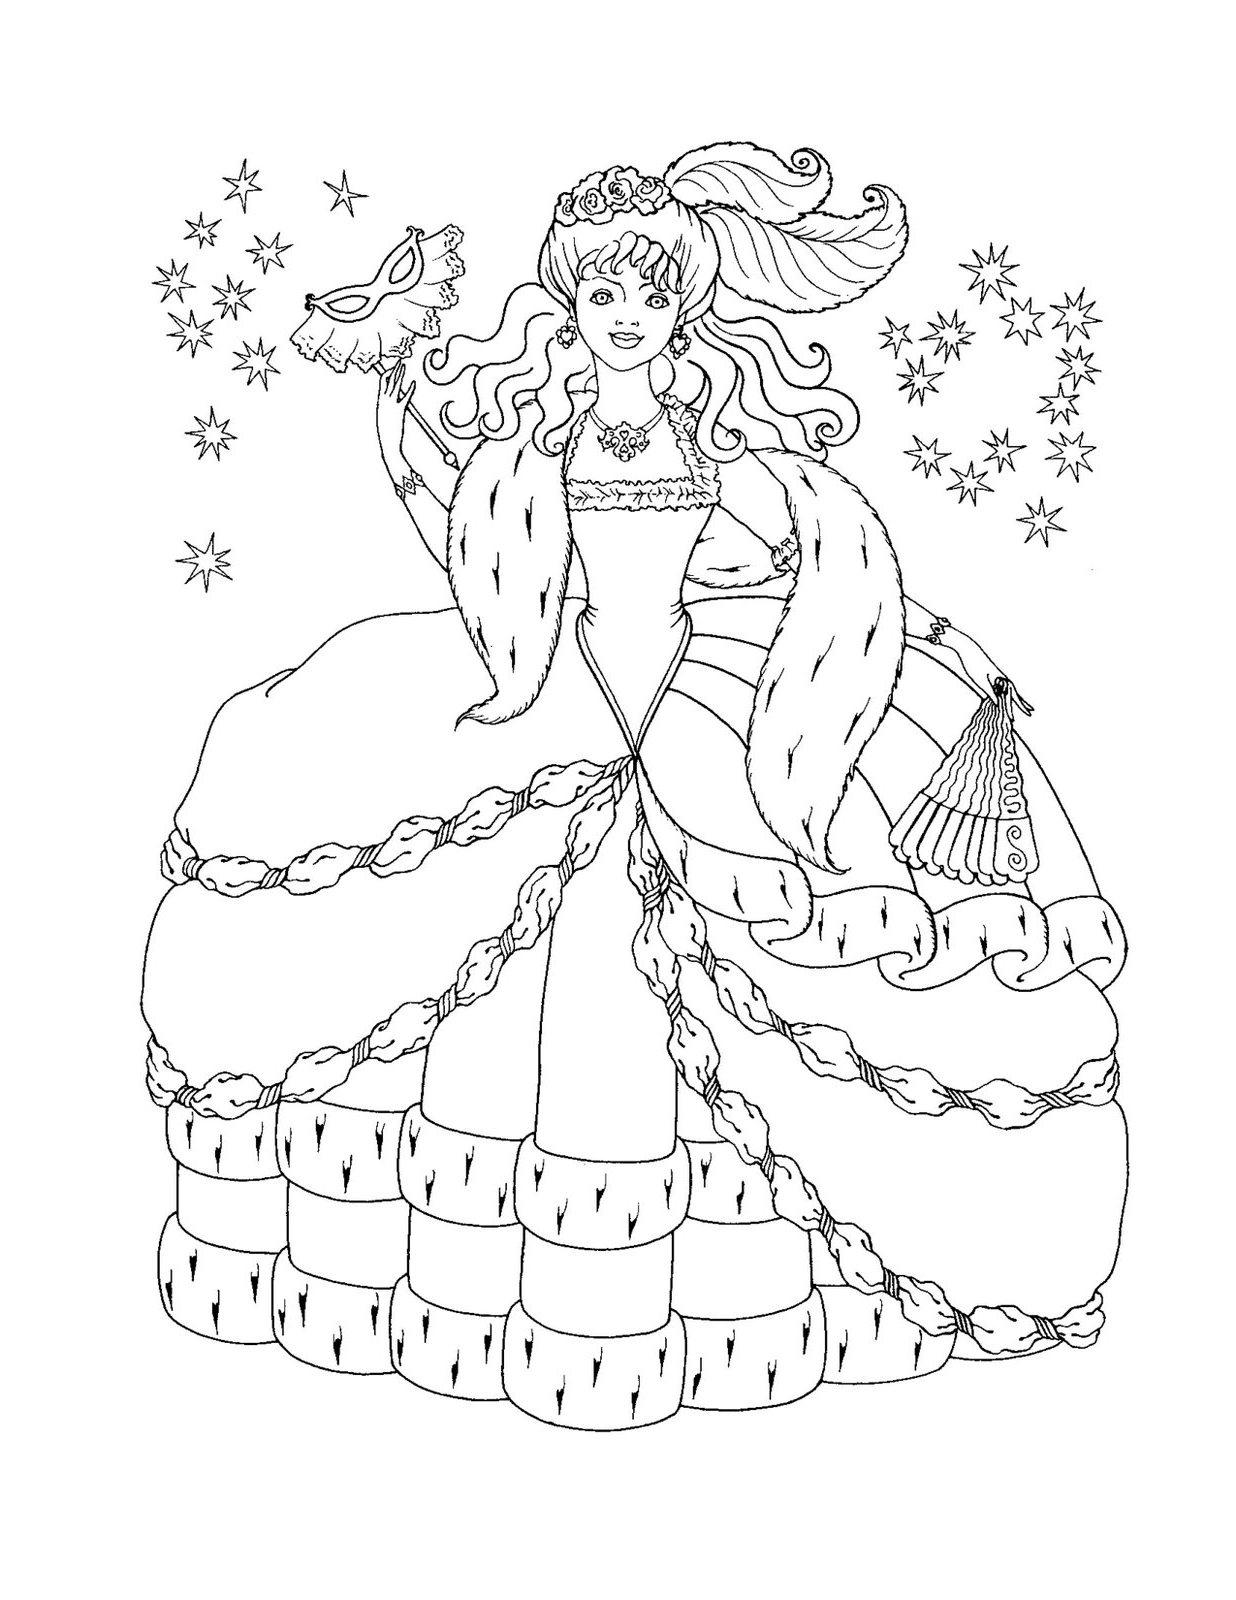 Free Printable Disney Princess Coloring Pages For Kids Princess Images Free Coloring Sheets